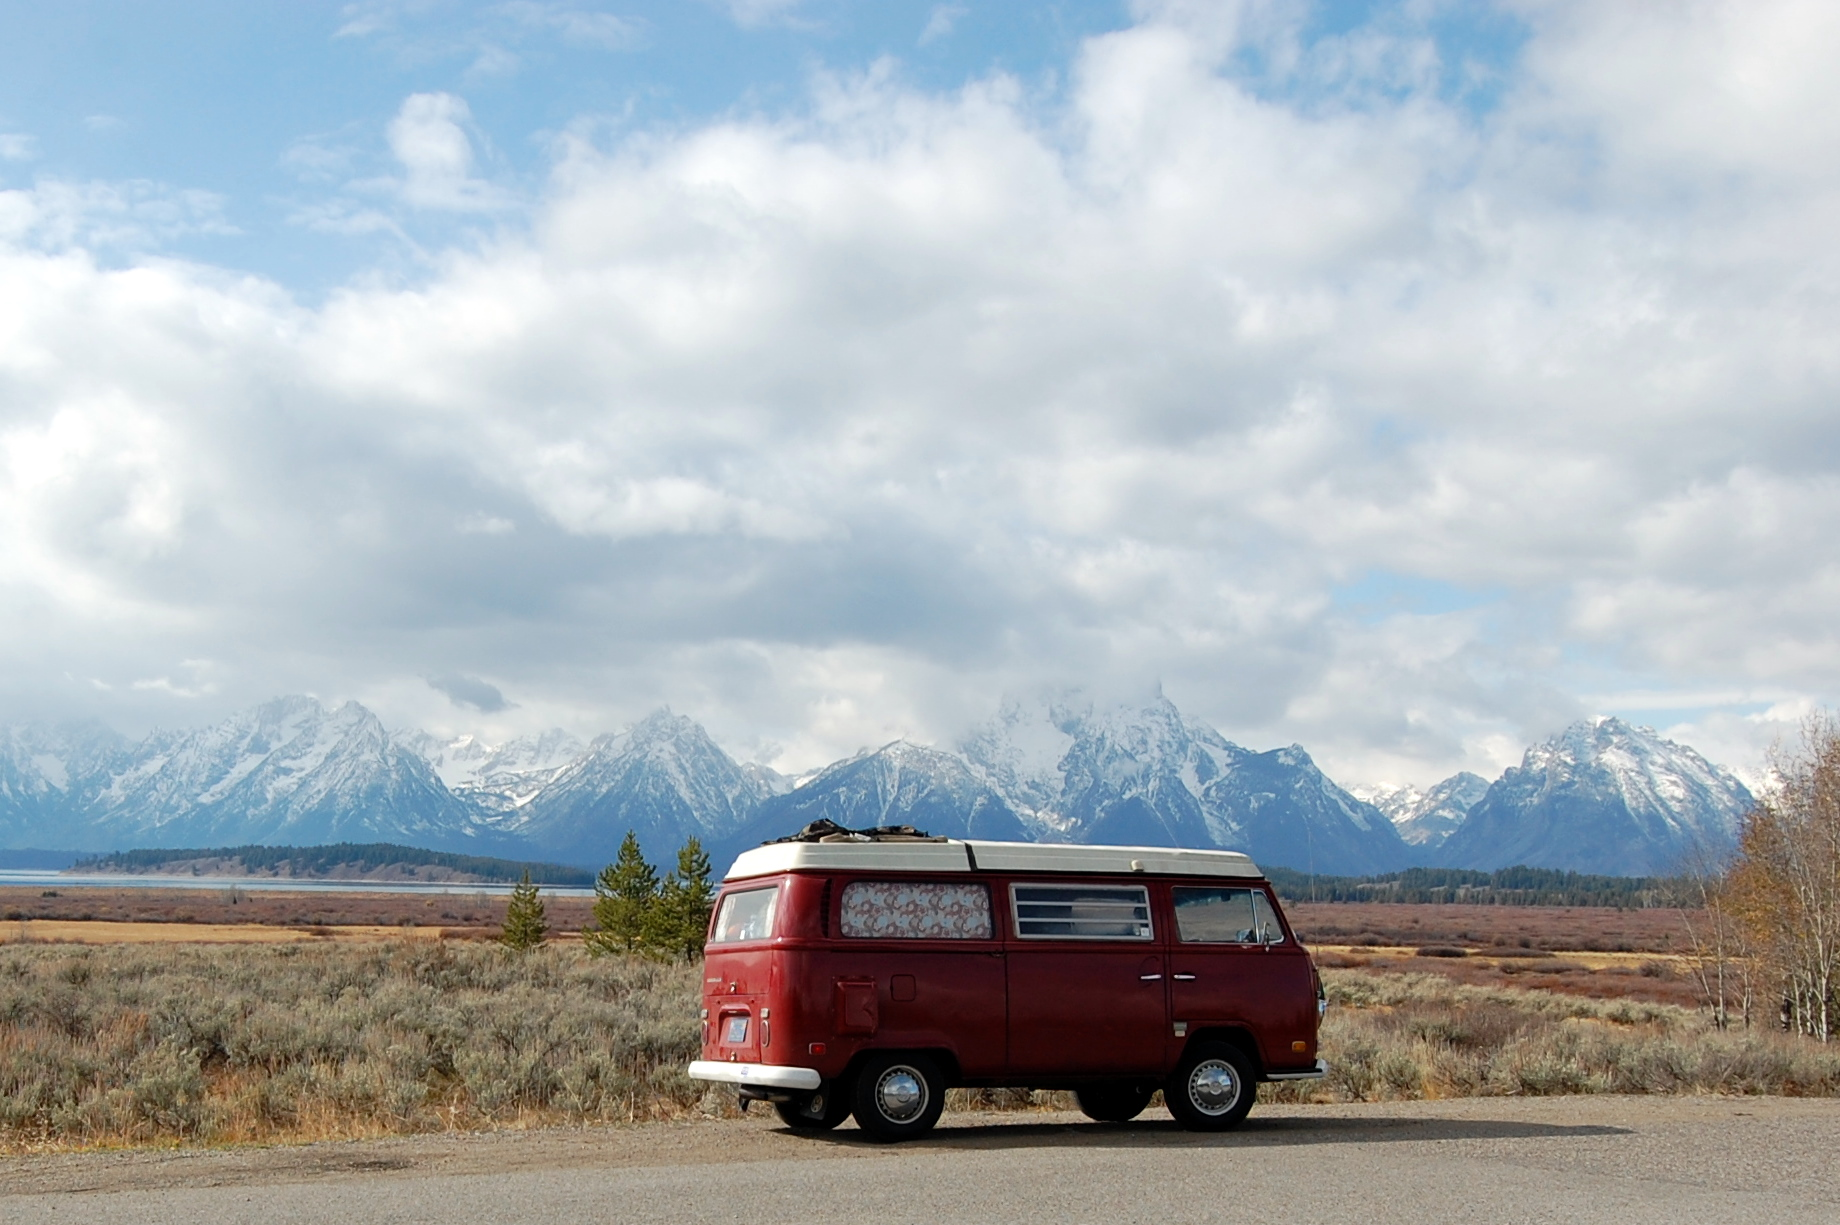 Driving through Yellowstone and the Grand Tetons in Wyoming